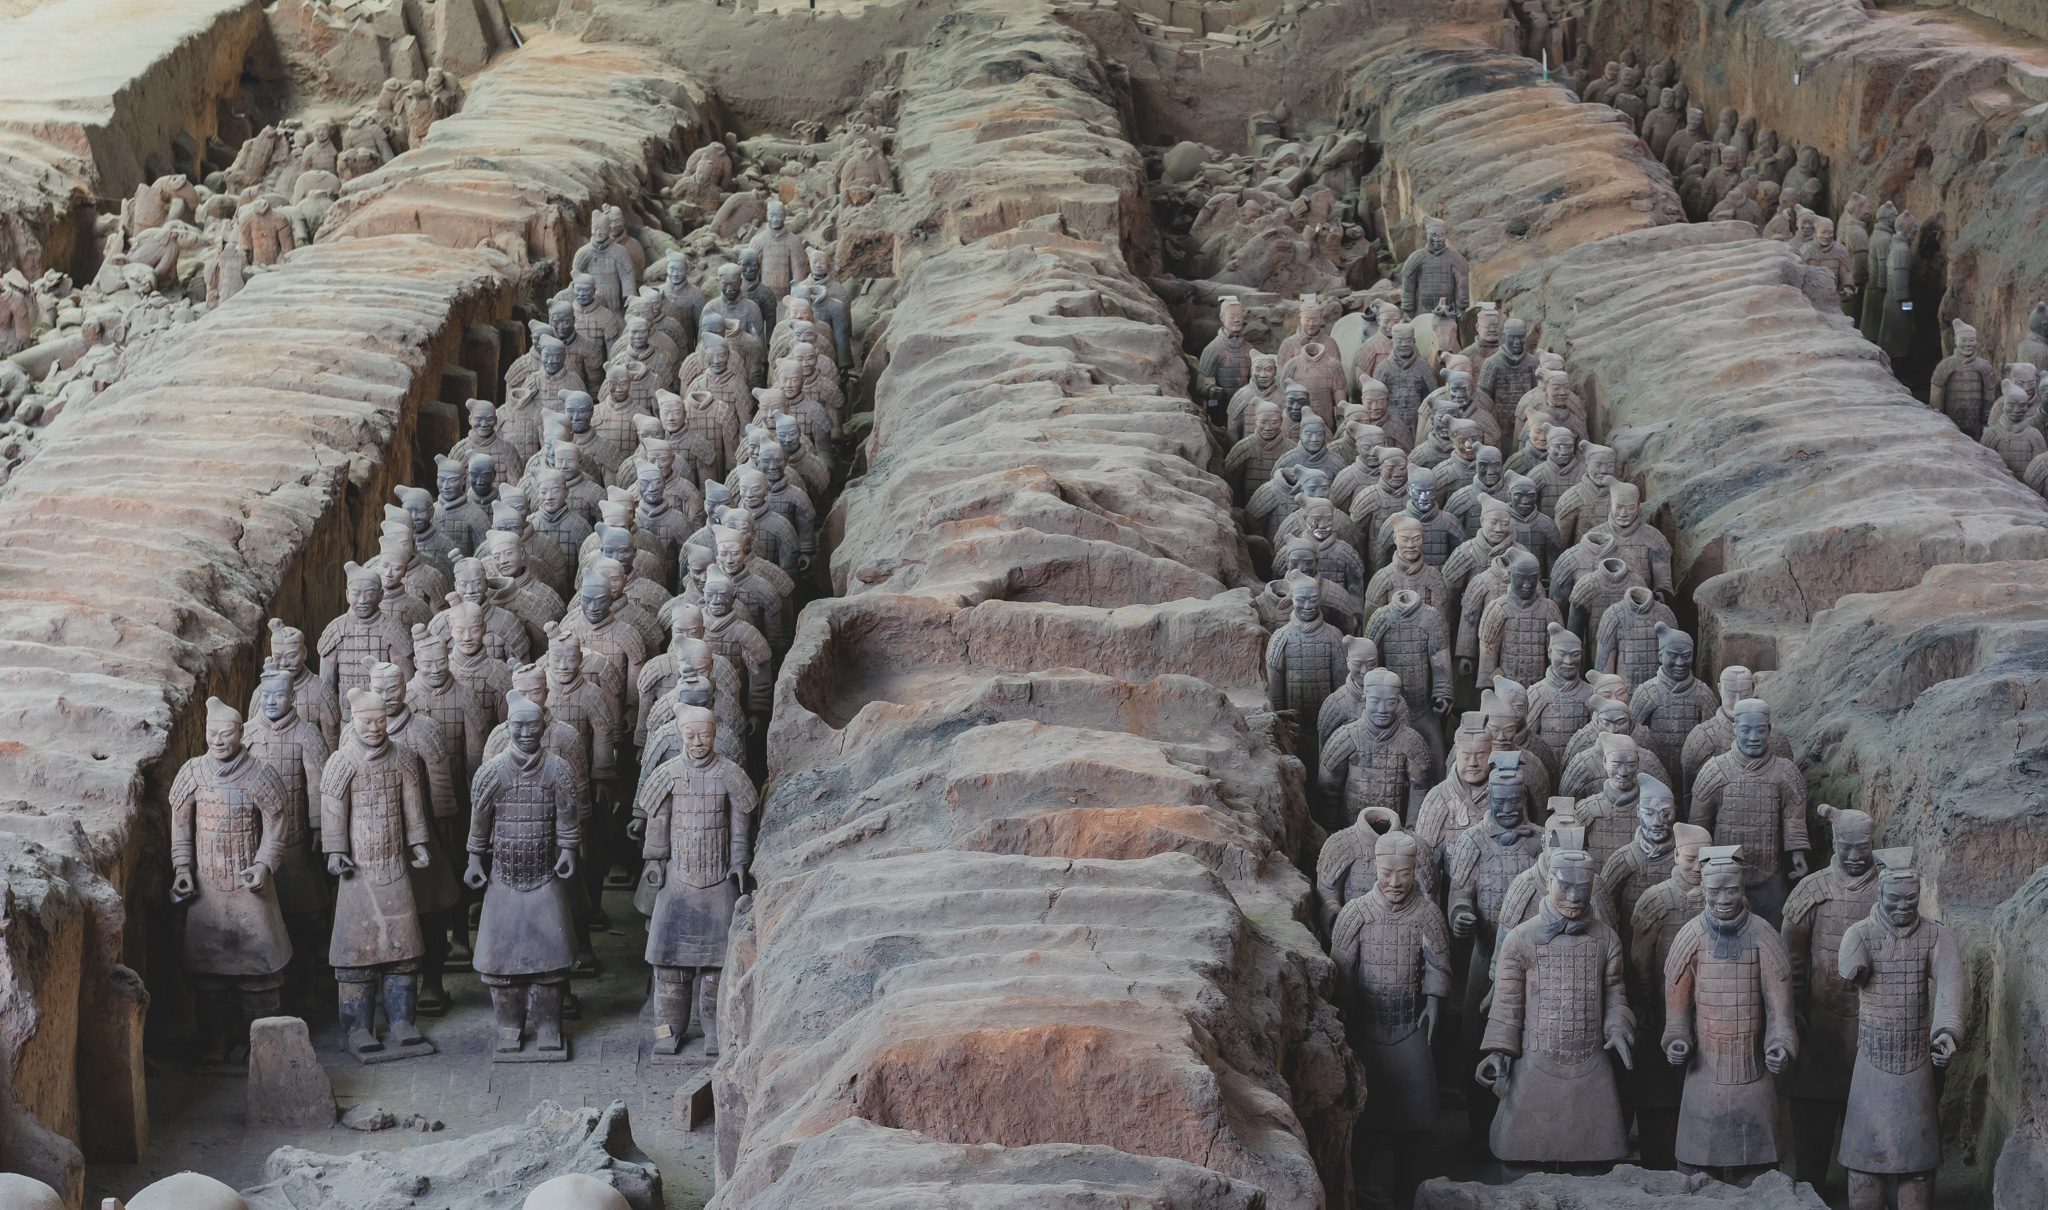 Xi'an Terracotta Army